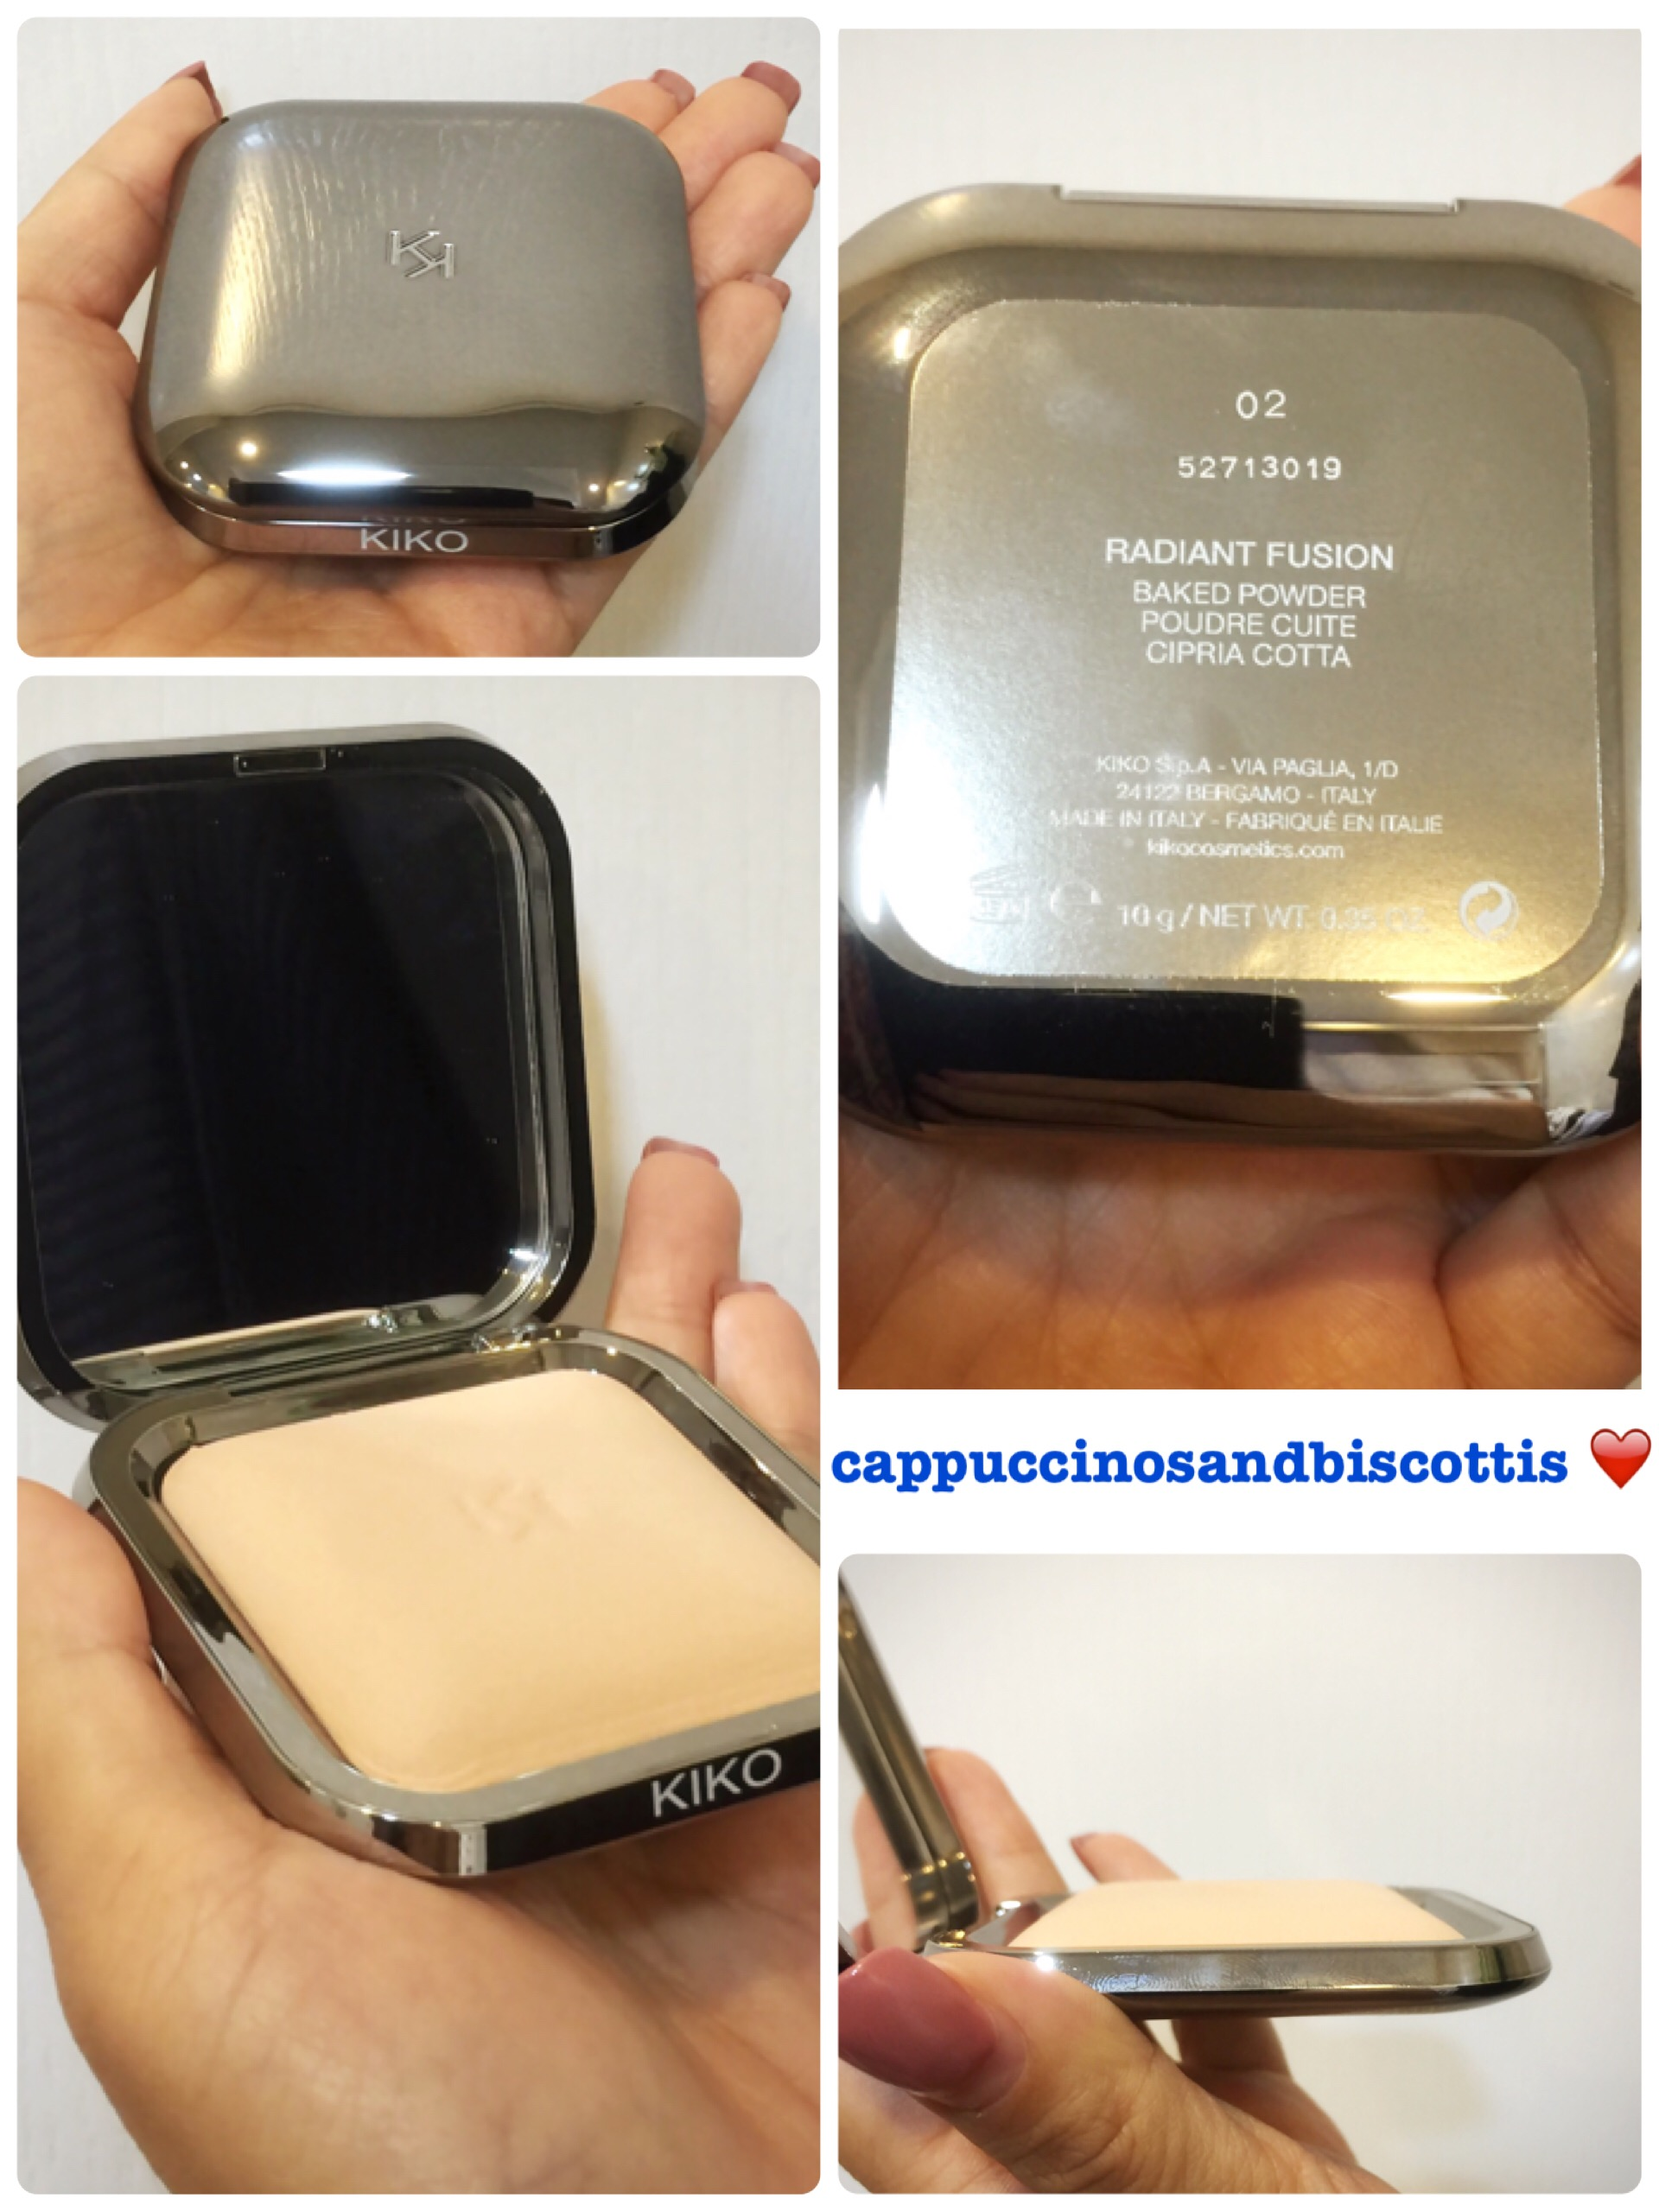 Eye Makeup boots botanics eye makeup remover : Kiko Radiant Fusion Baked Powder Review u2013 cappuccinos and ...